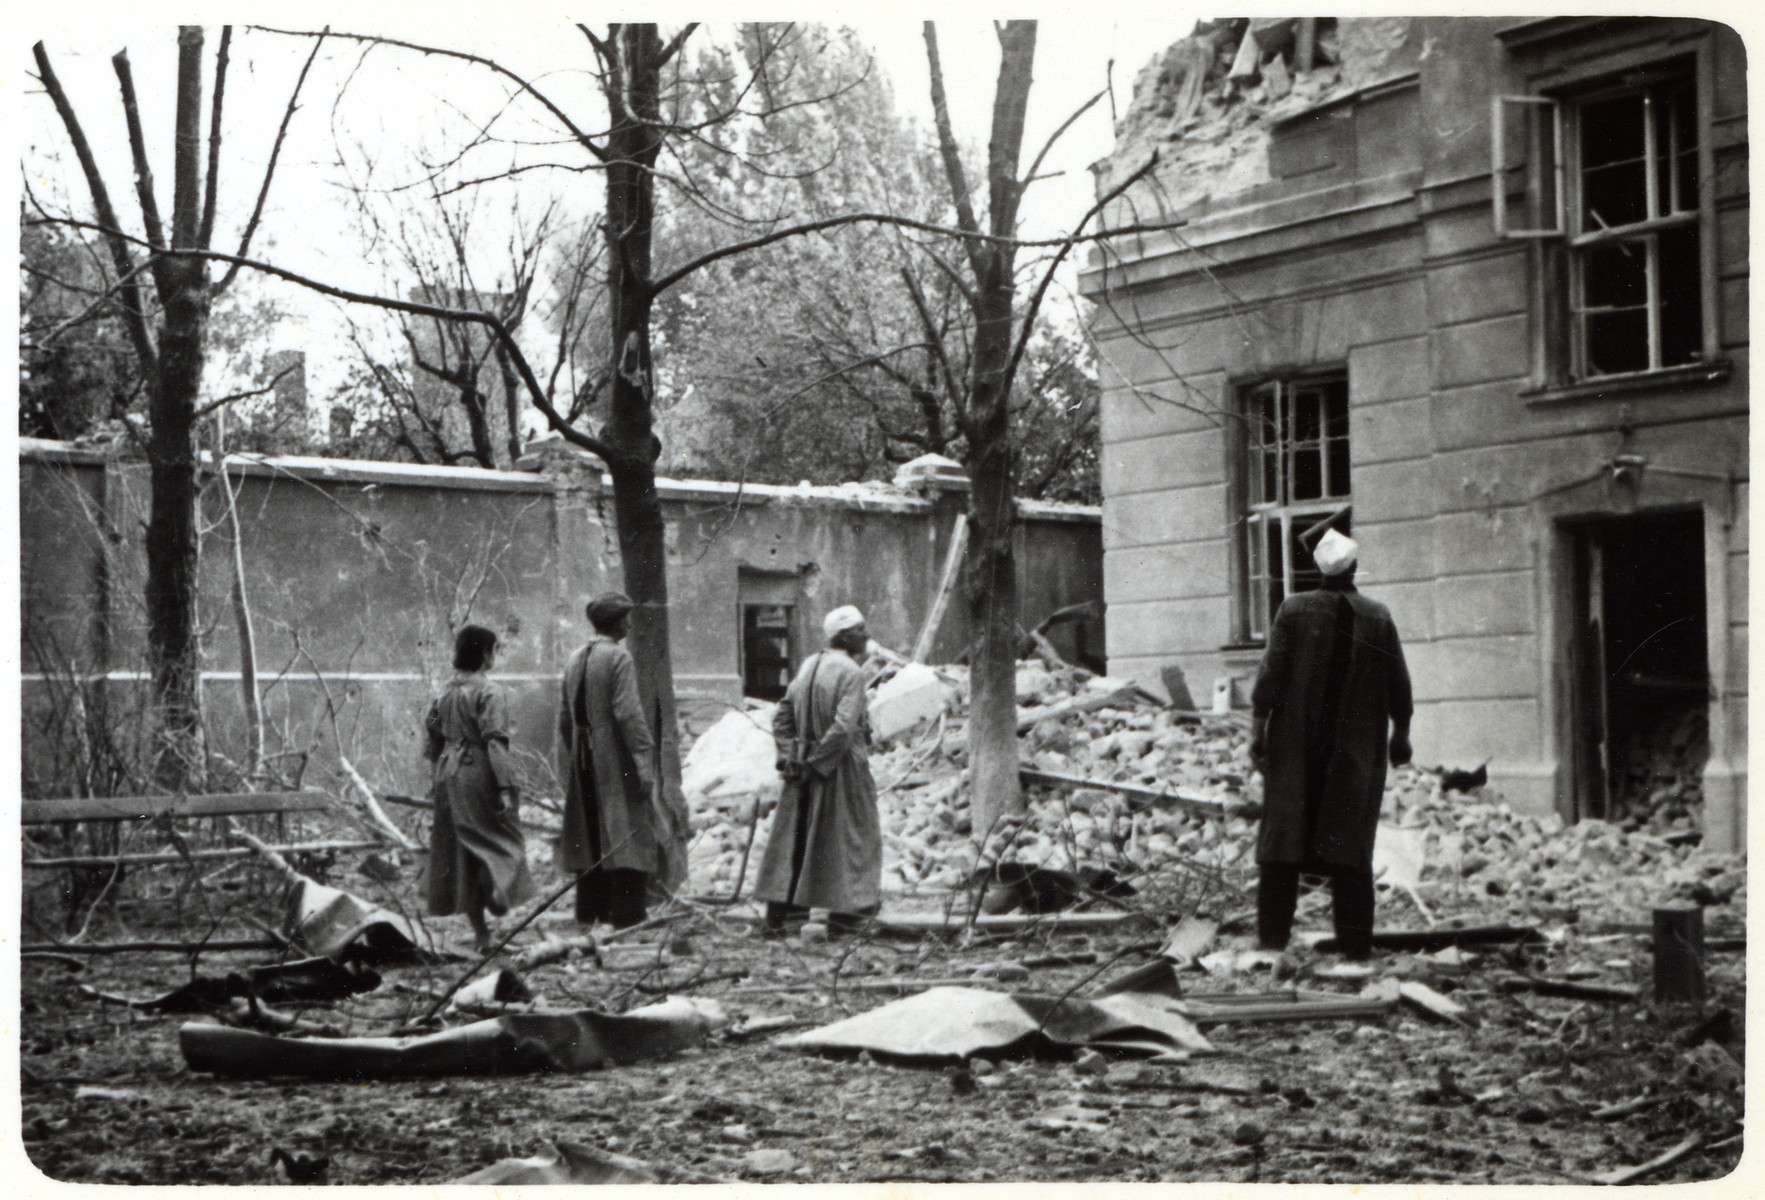 Polish doctors and nurses look at the damage to their hospital, The Transfiguration of the Lord, following its bombing during the siege of Warsaw.